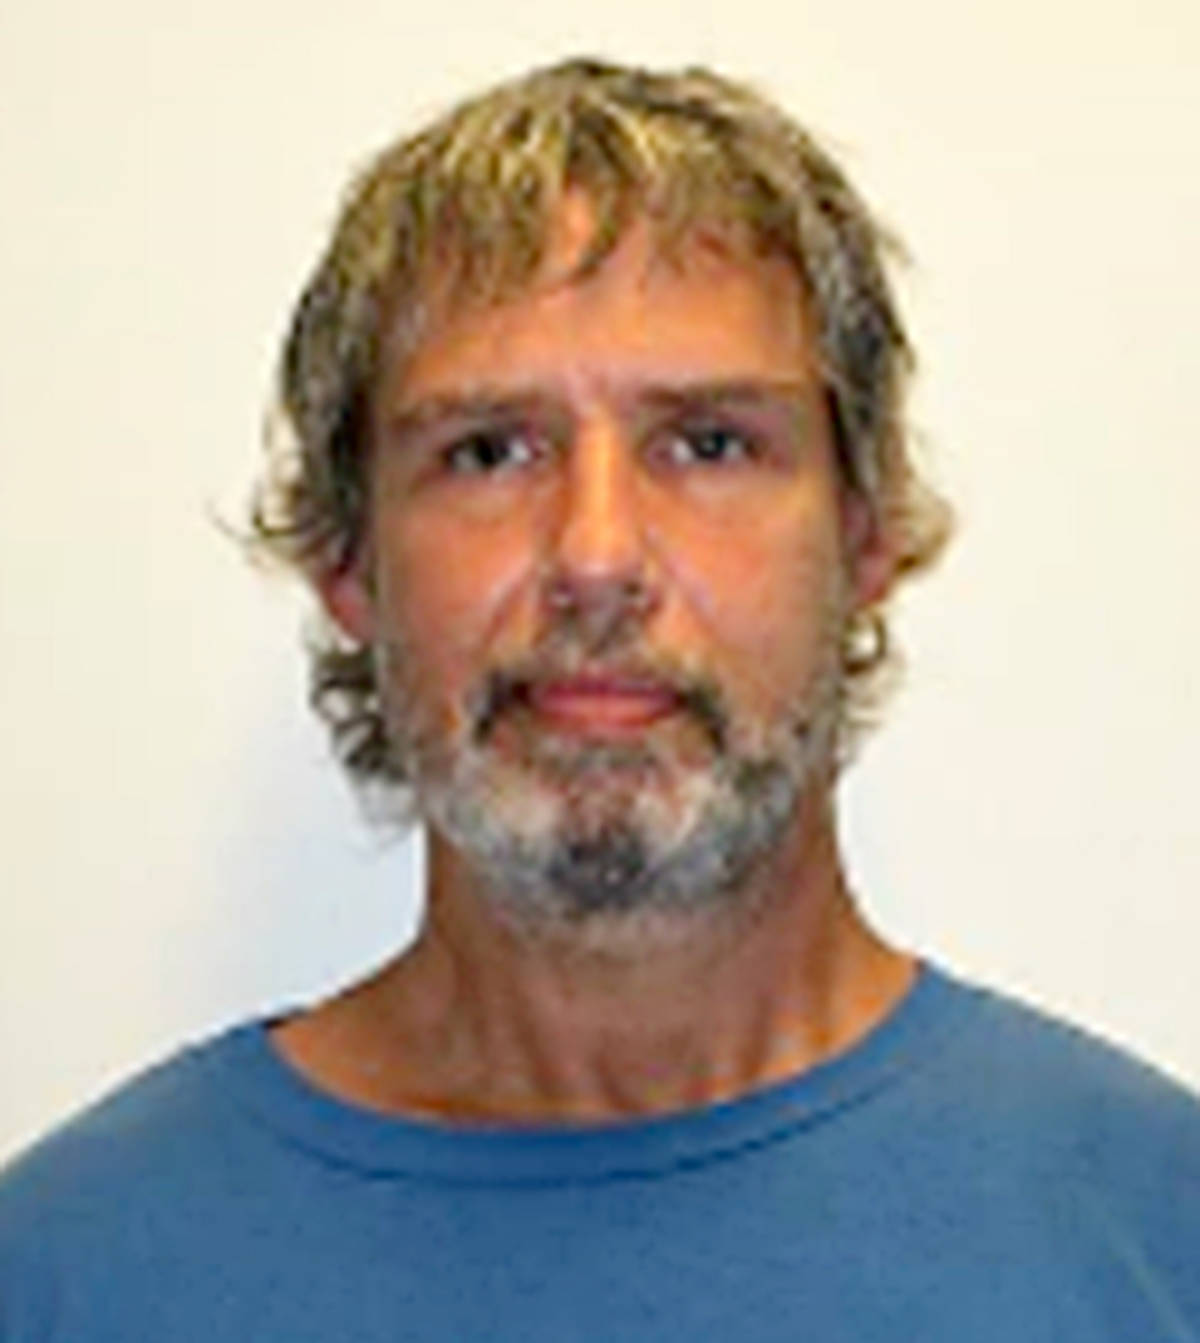 """Name : OSCROFT, David Age: 60 Height: 6' 3"""" Weight: 250 lbs Hair: Brown/Grey Eyes: Green Wanted: Multiple robberies and thefts Warrant in effect: July 15, 2021 Parole Jurisdiction: North Vancouver"""